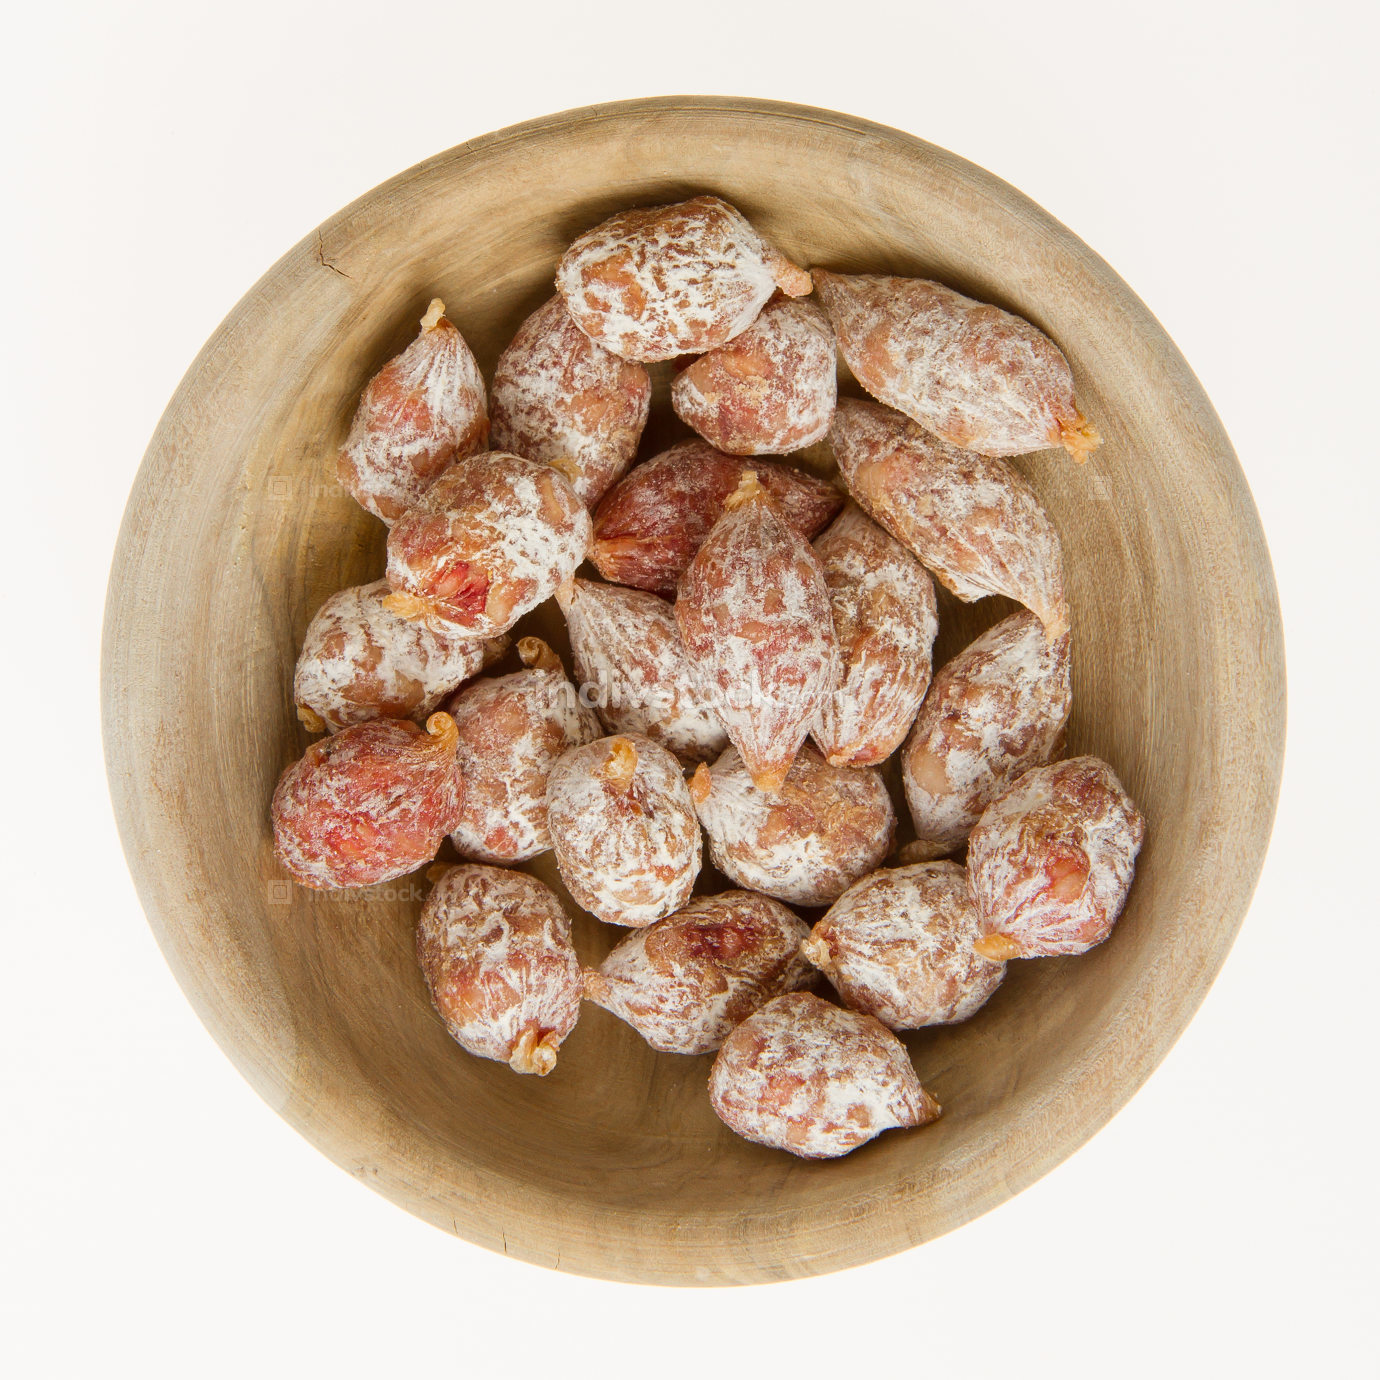 Close-up of salami of Italy in a wooden bowl